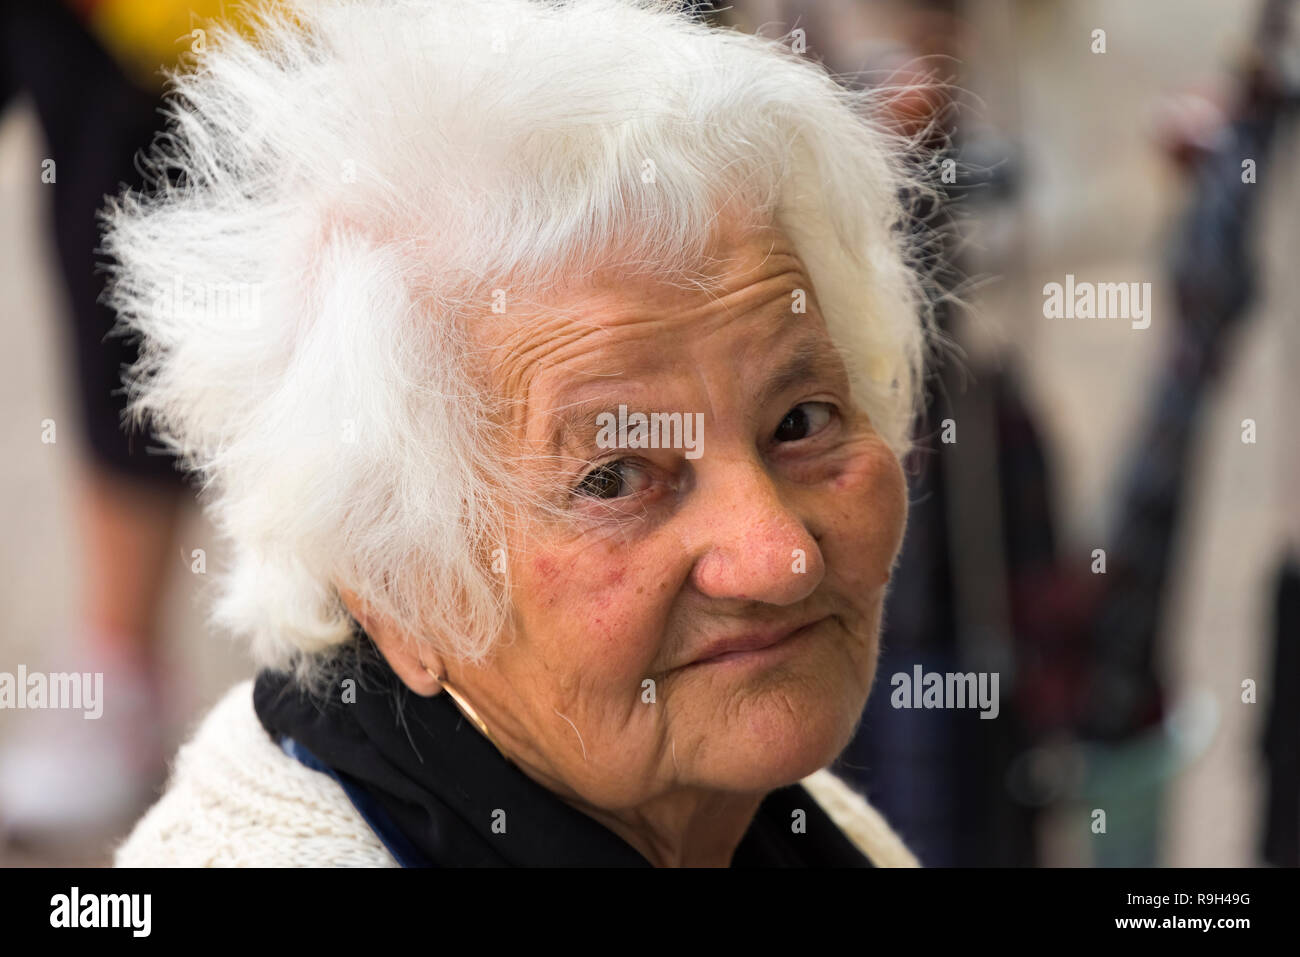 Old woman, Banja Luka, Bosnia and Herzegovina - Stock Image